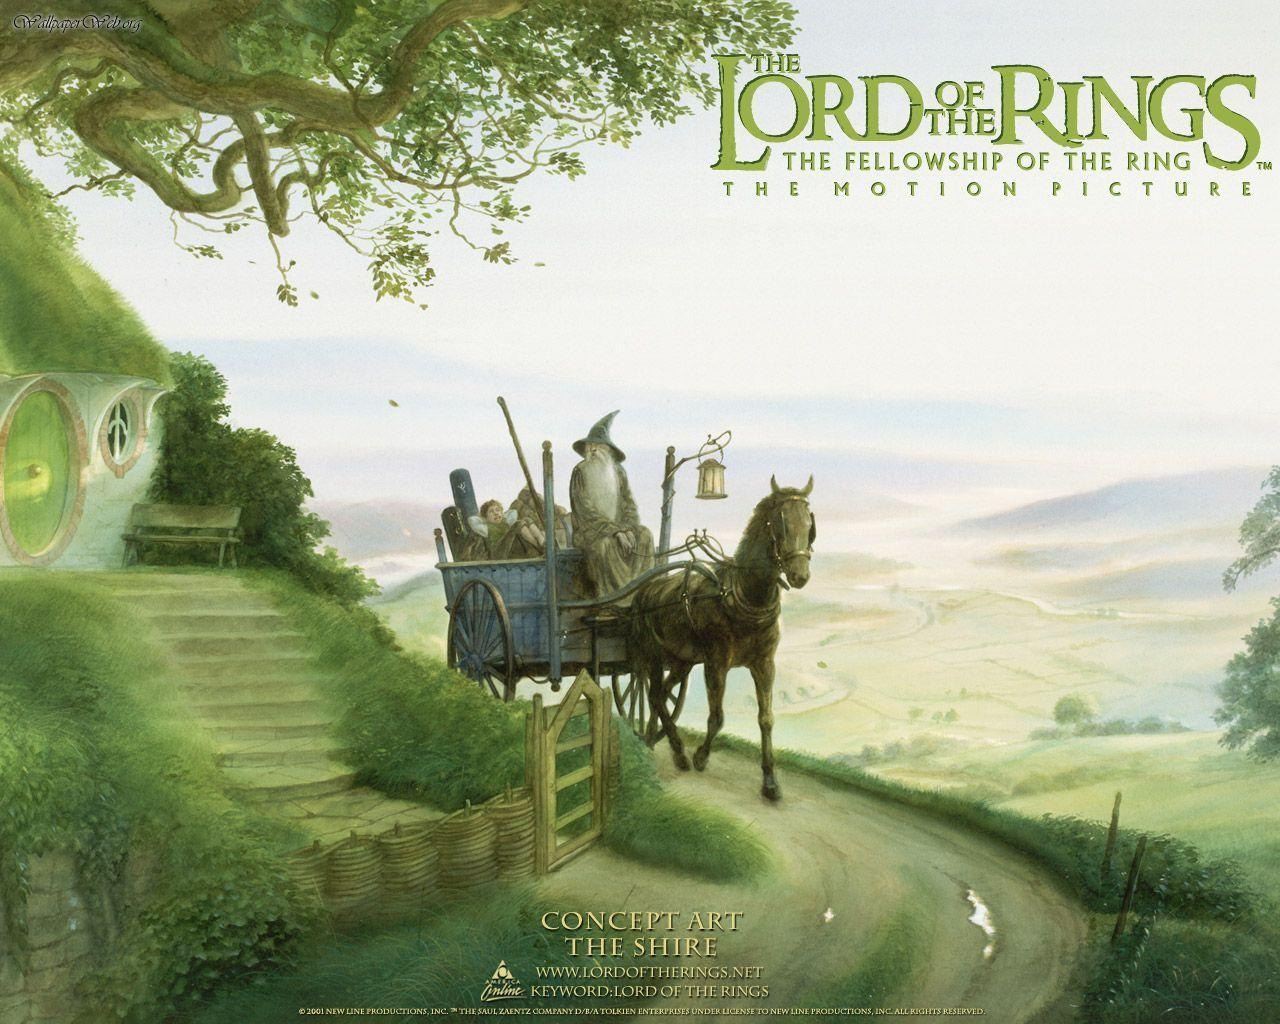 Movies: The Lord of the Rings: The Fellowship of the Ring, picture